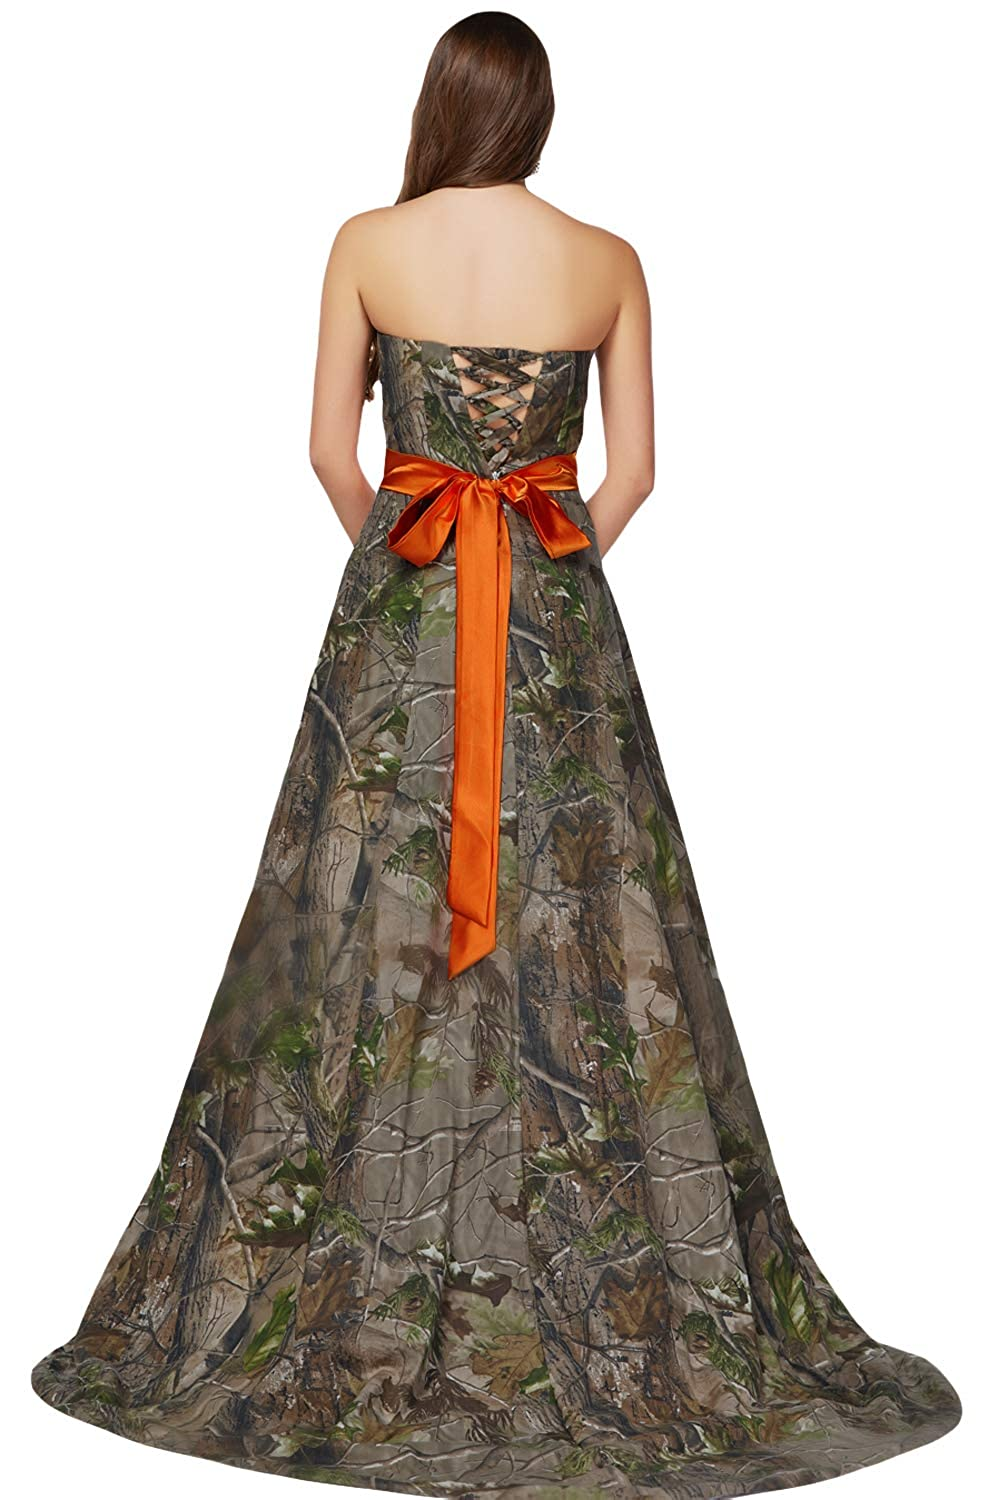 ee5163f42dc24 DINGZAN Floor Length Mother The Bride Dresses Military Evening Gown Camo:  Amazon.ca: Clothing & Accessories